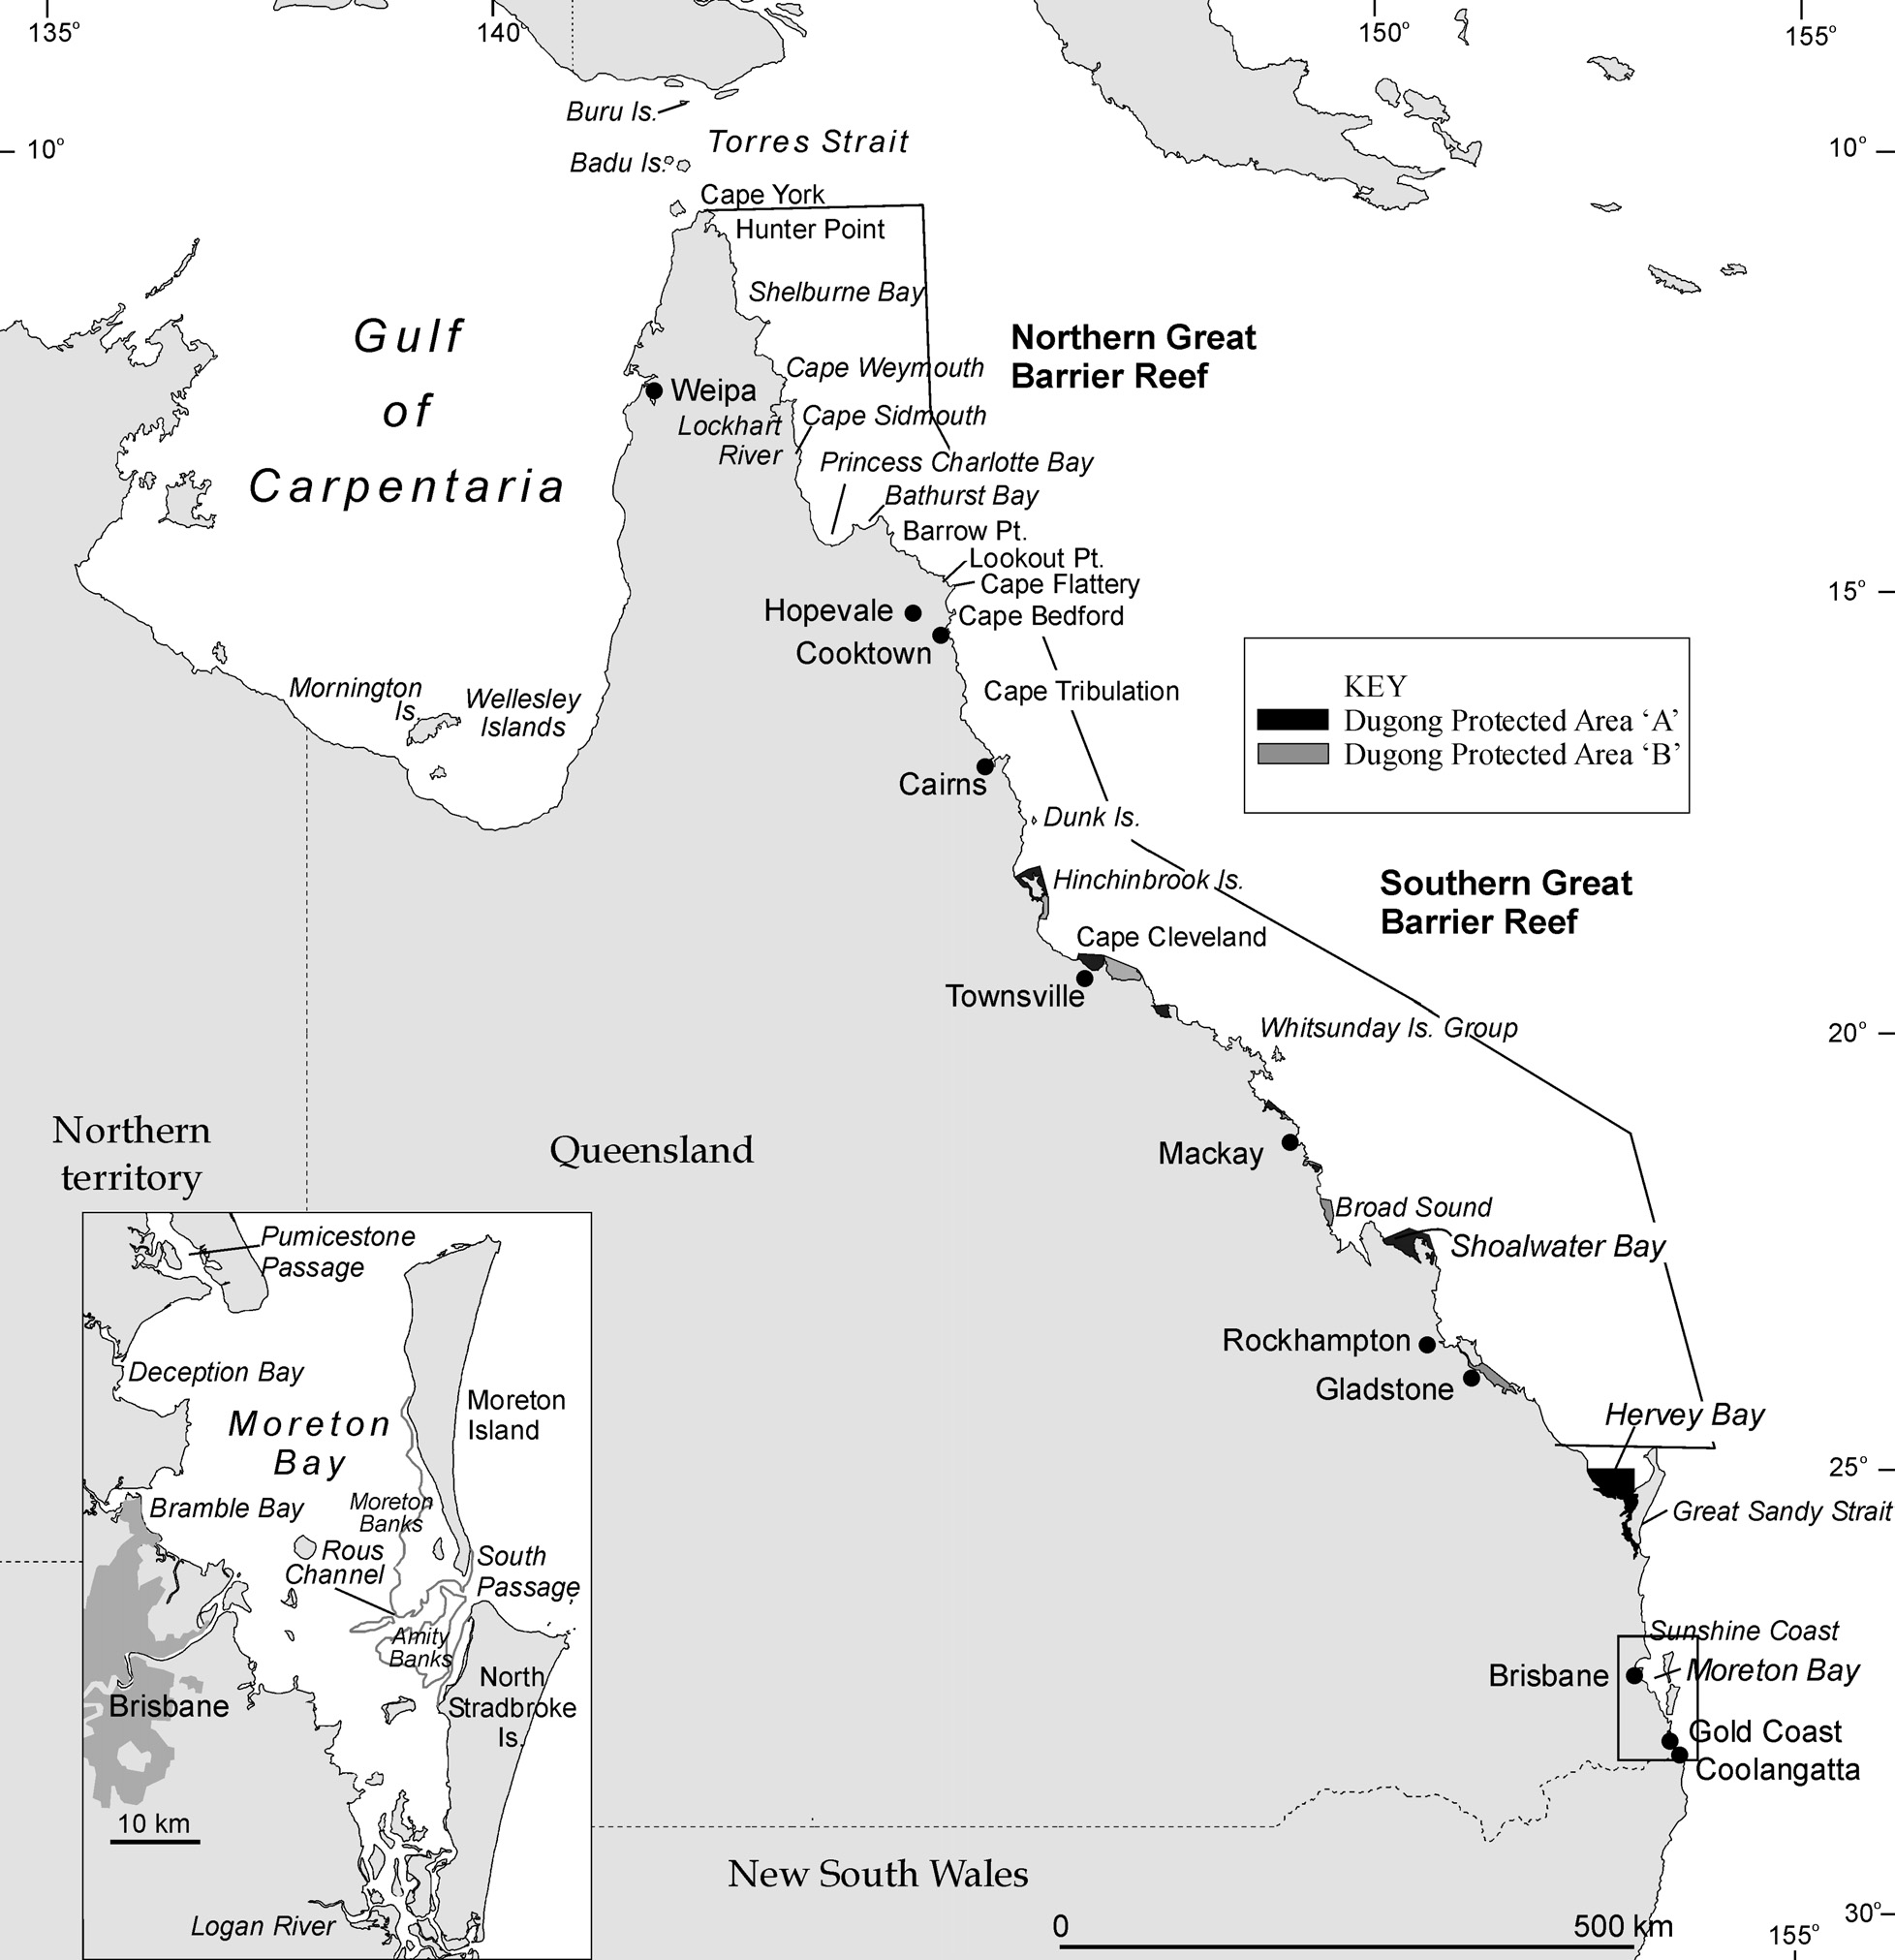 Figure 6.6 The urbanised coast of Queensland (from Cooktown south on this map) showing place names mentioned in the text and the Dugong Protection Areas.